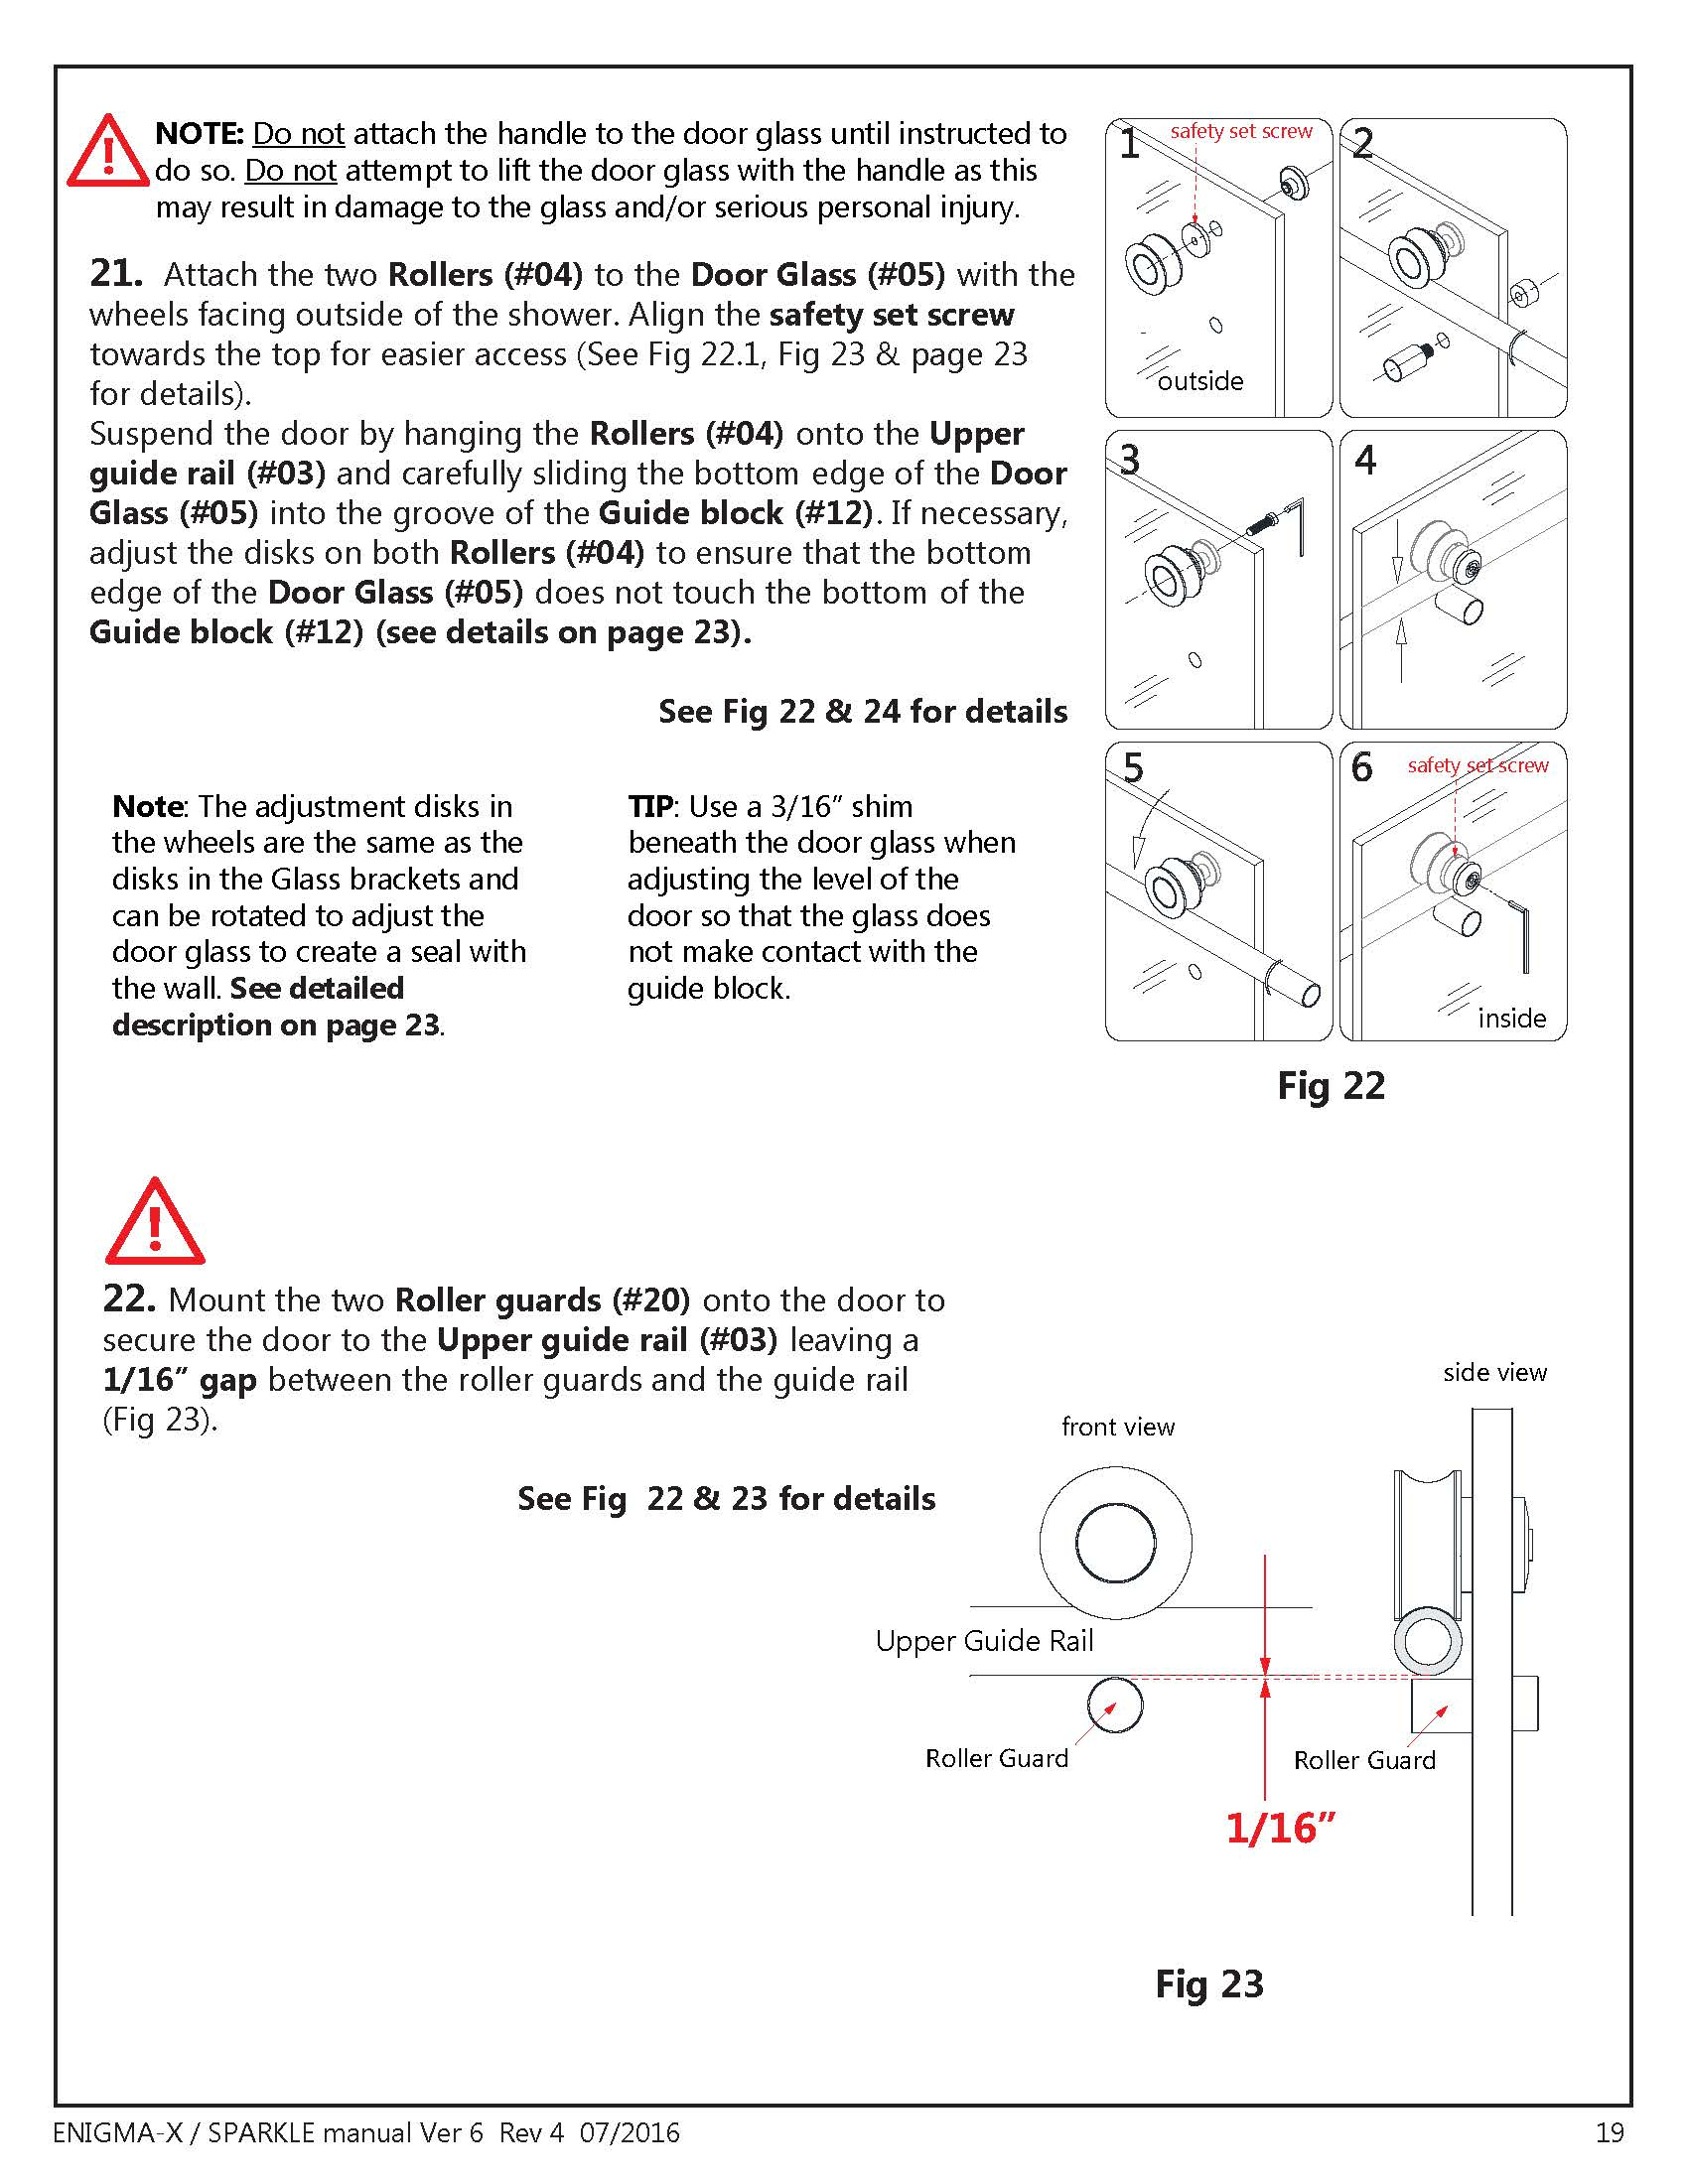 DreamLine Enigma X glass shower door Install manual NOTE Sections 21 & 22